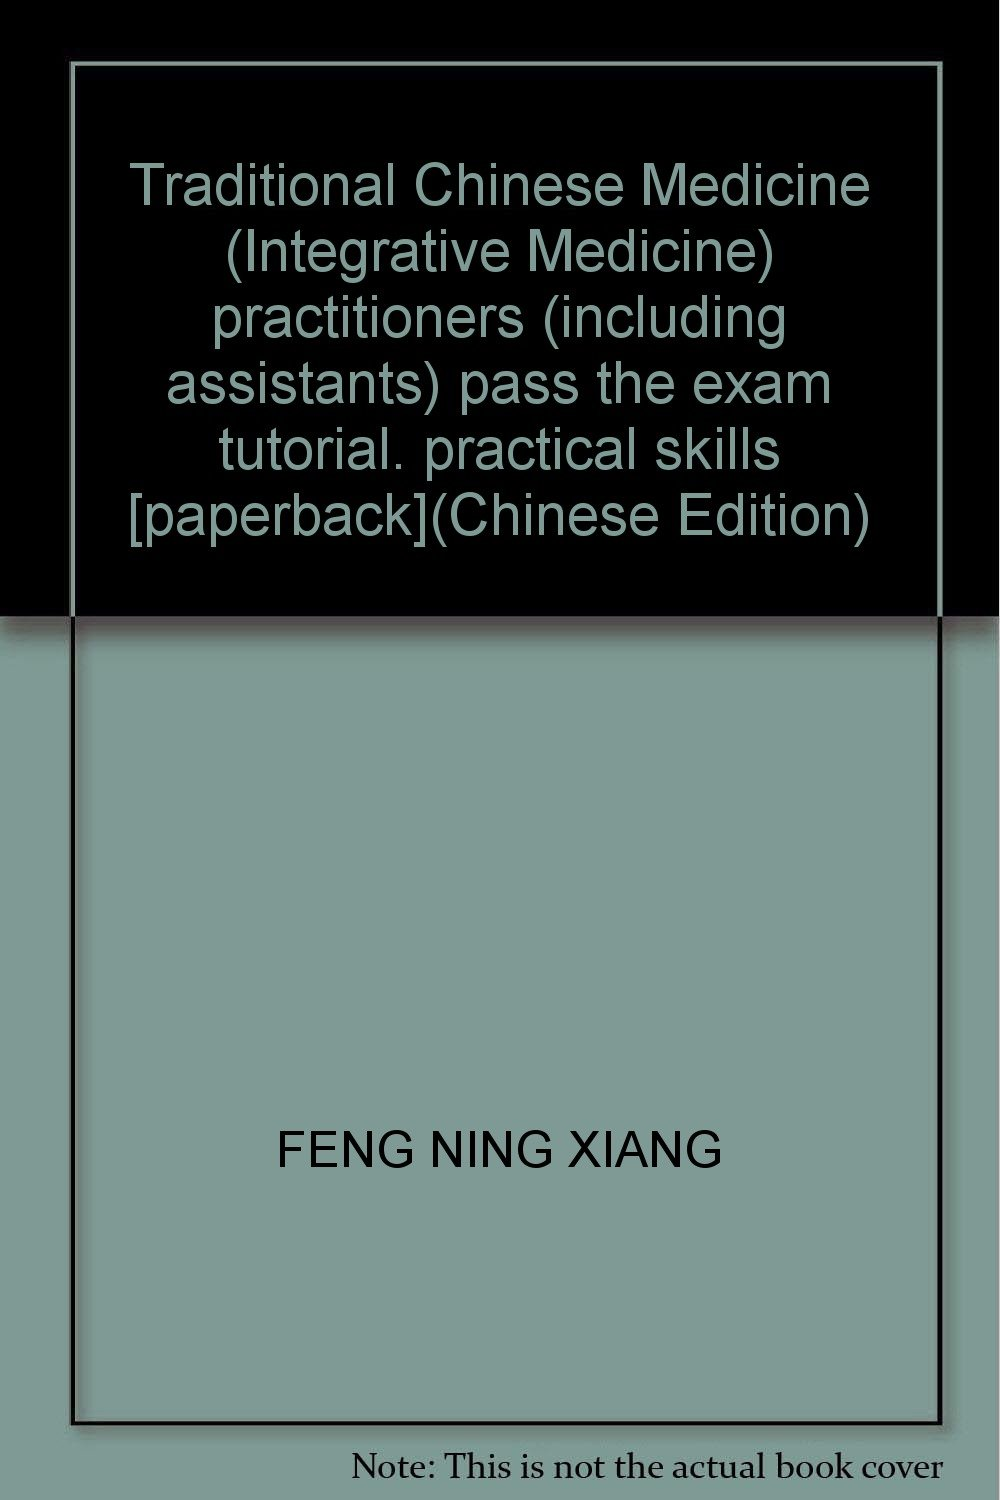 Traditional Chinese Medicine (Integrative Medicine) practitioners